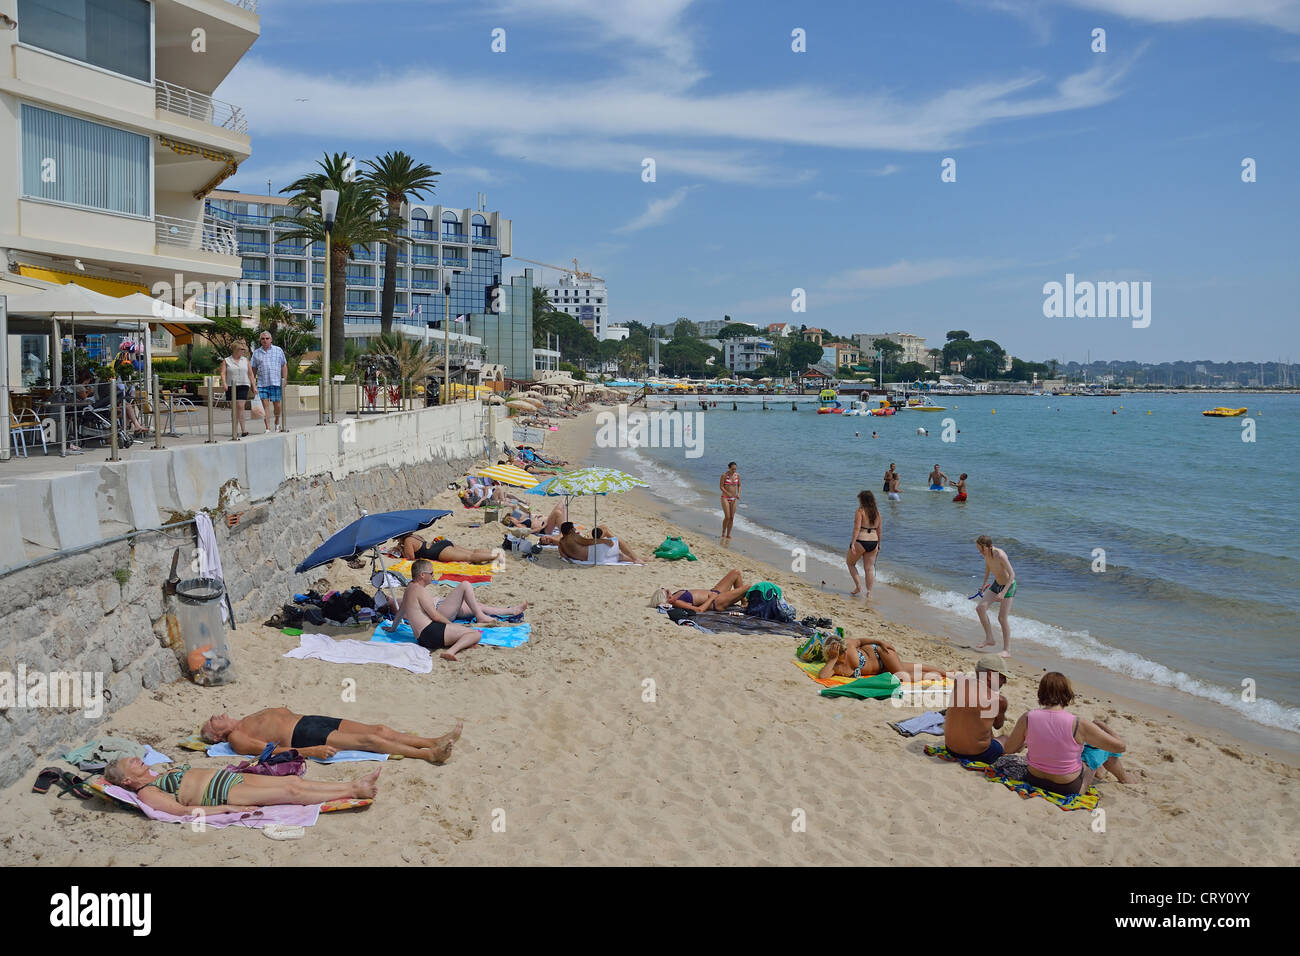 plage publique public beach juan les pins c te d 39 azur stock photo 49151311 alamy. Black Bedroom Furniture Sets. Home Design Ideas